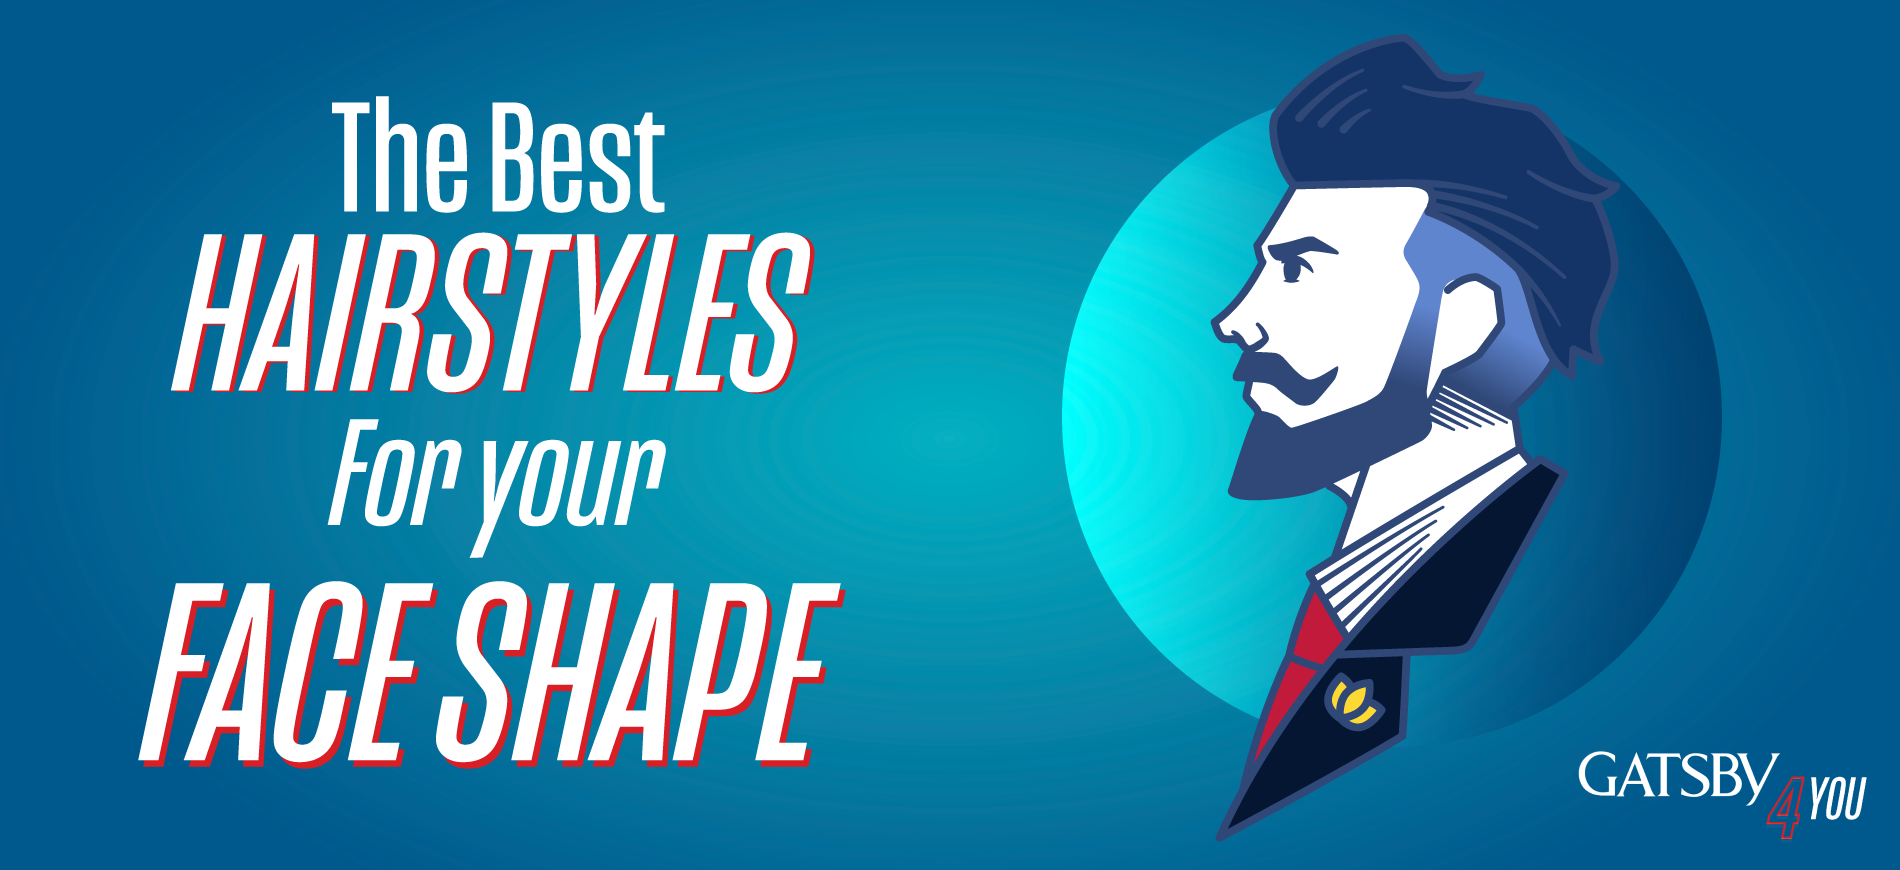 The Best Hairstyles for your Face Shape article banner